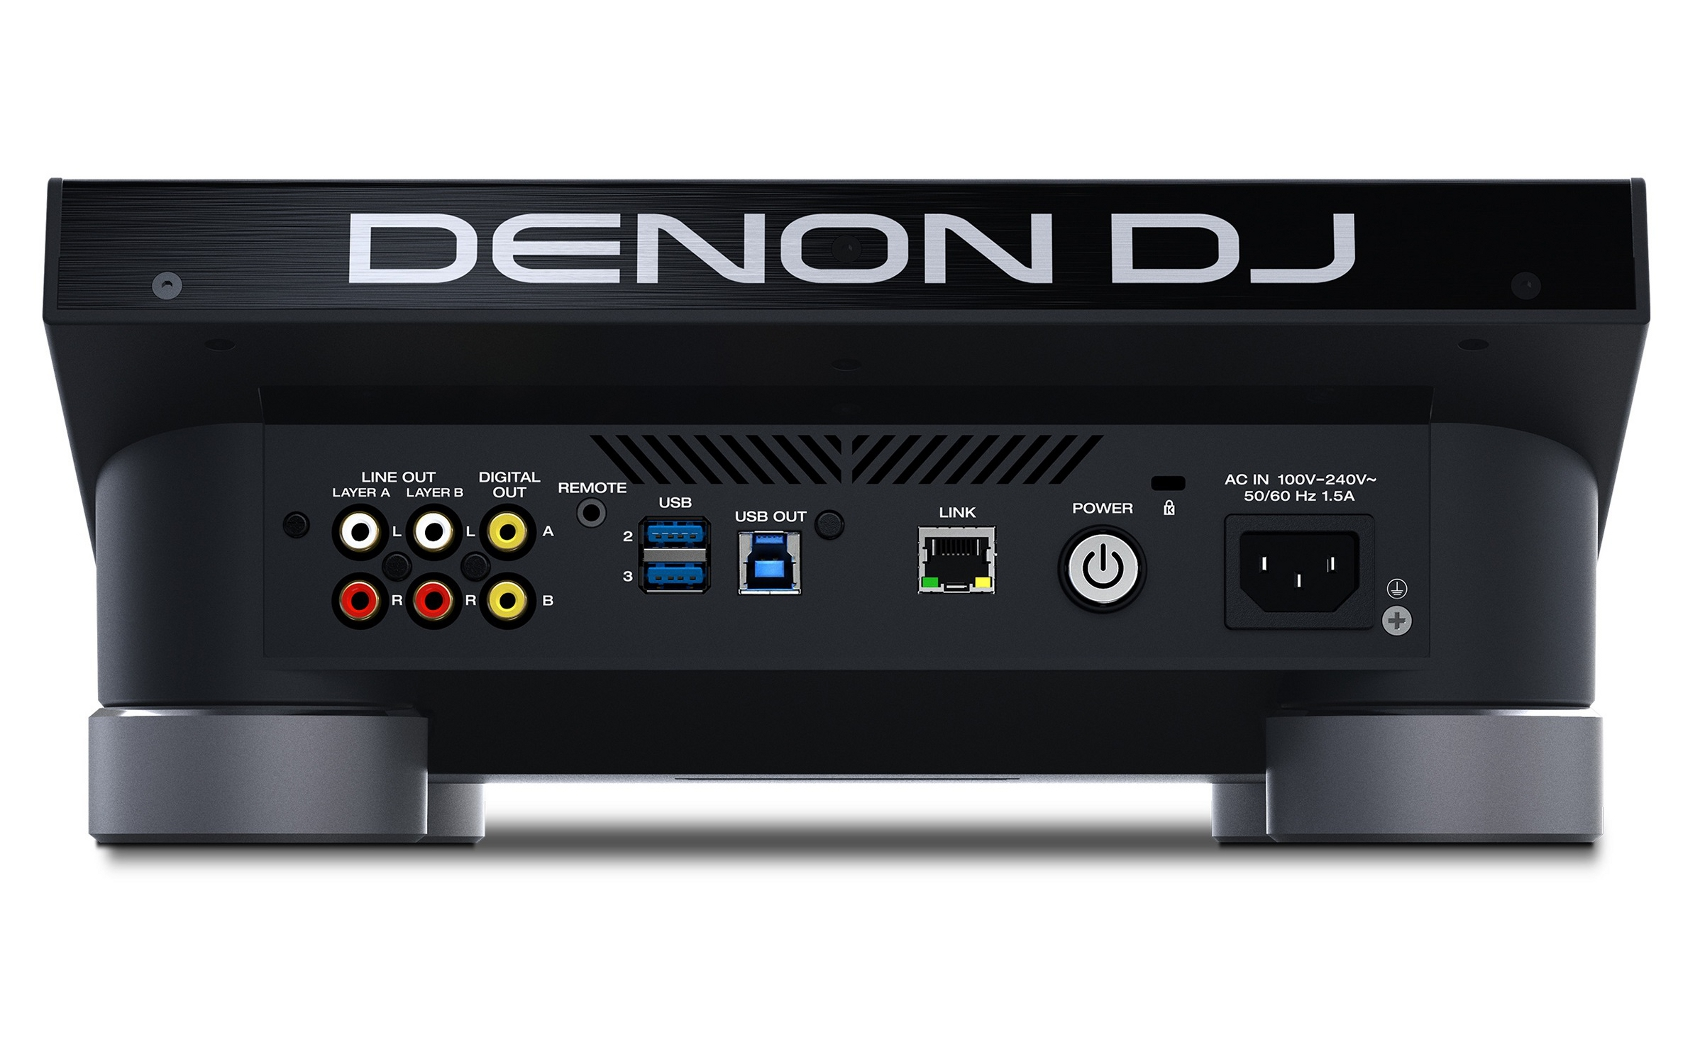 DENON DJ DC5000 PRIME LETTORE MEDIA PLAYER PER DJ USB SD CON DISPLAY HD 7 MULTI-TOUCH 3